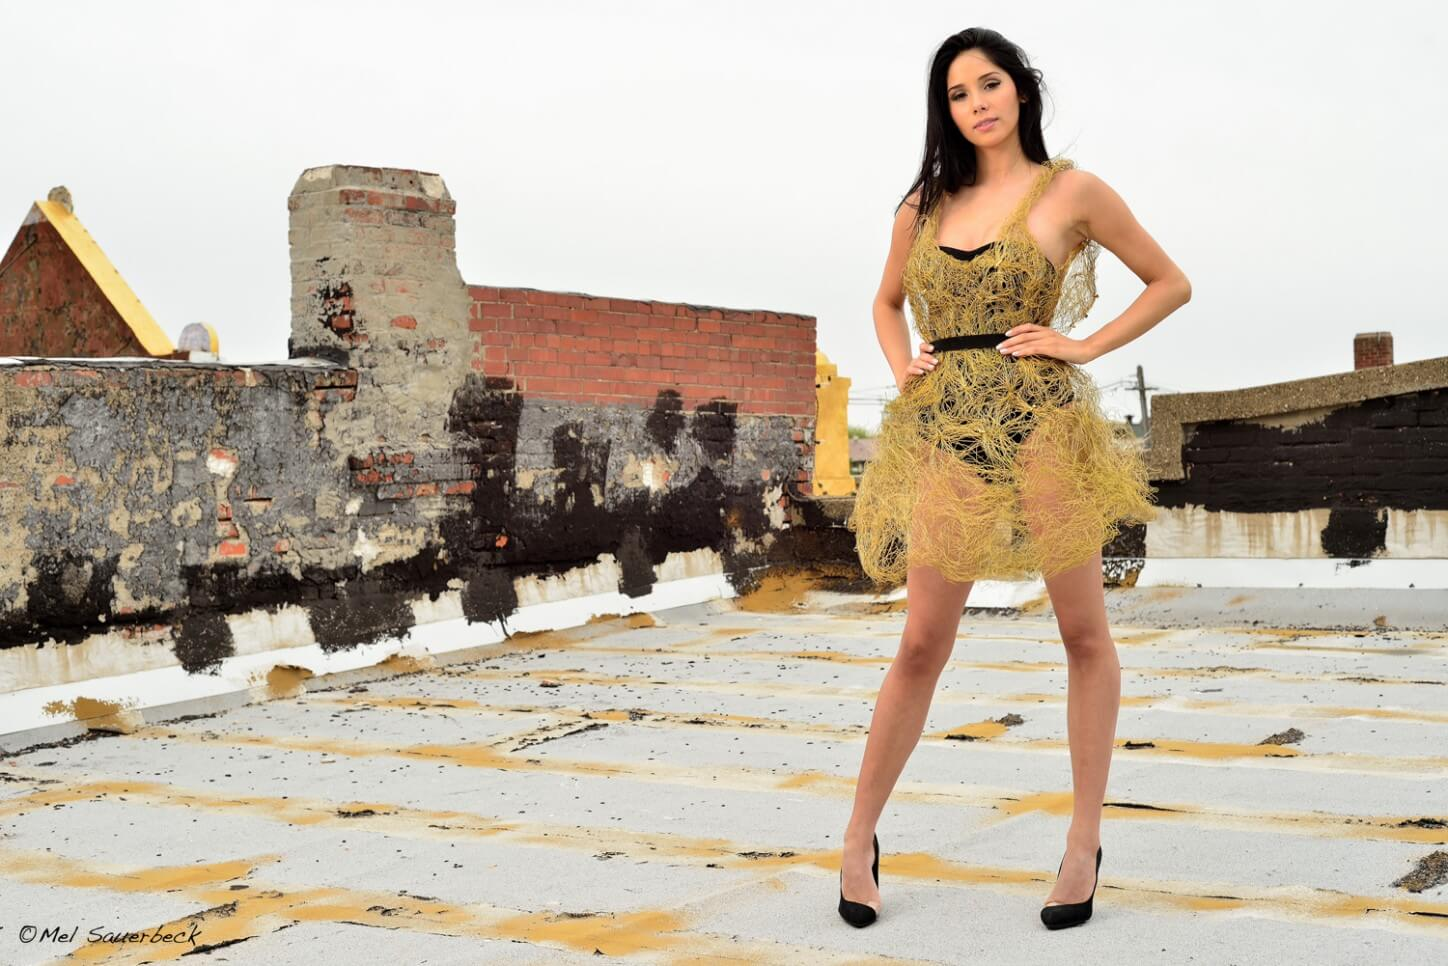 Young woman in gold mesh on rooftop